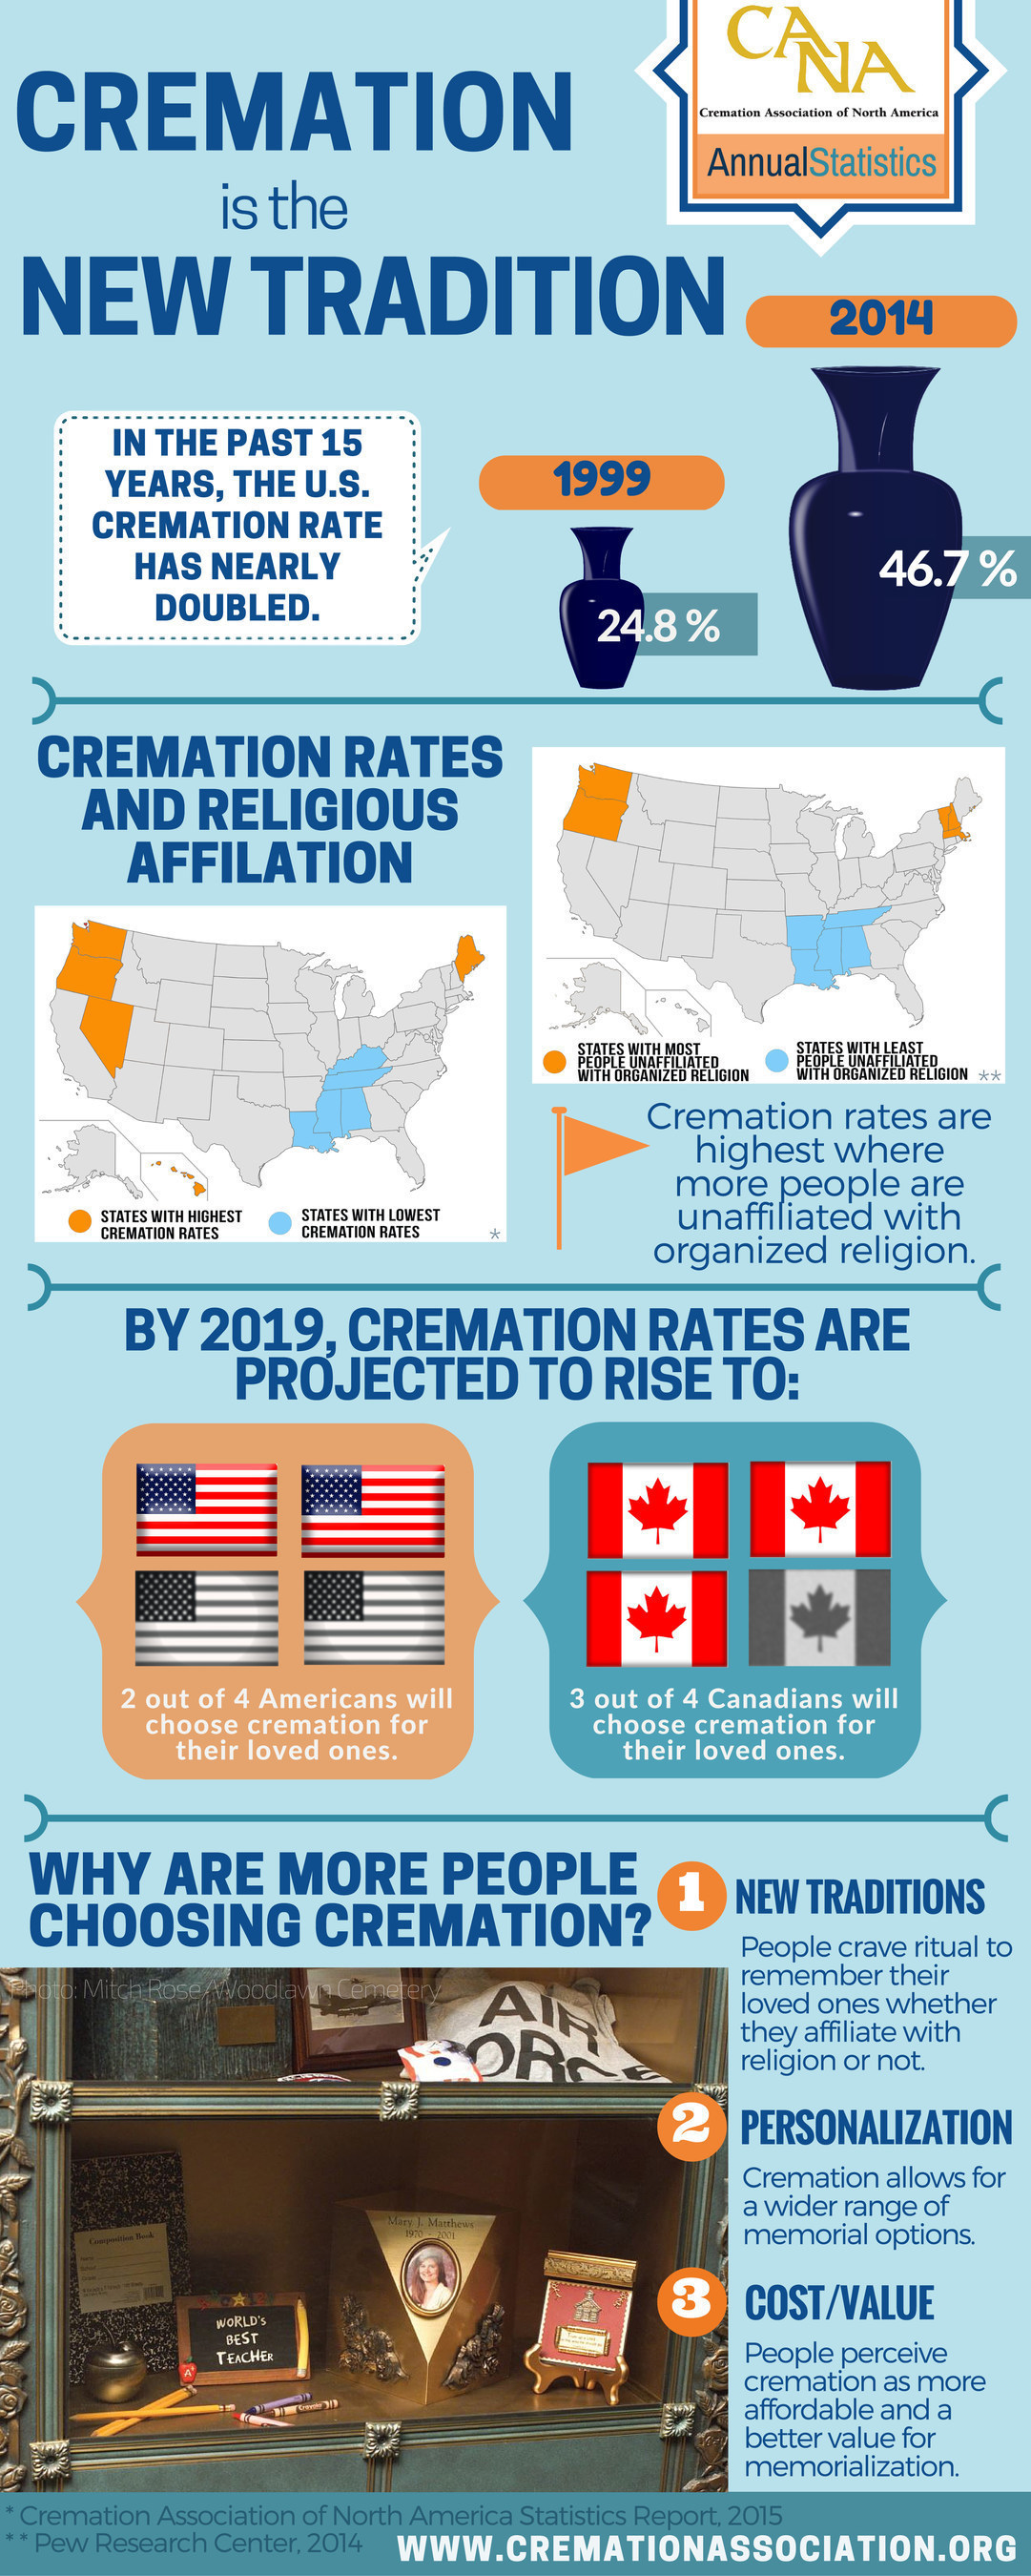 Cremation is becoming the new normal. In 2014, nearly one in two Americans (46.7 percent) selected cremation as an alternative to burial, according to a report released today by the Cremation Association of North America (CANA). Even more fascinating is the fact that today, states with high cremation rates bear a striking resemblance to states that report having a large number of people who do not identify with any organized religion. These states are typically in the west and northeast.